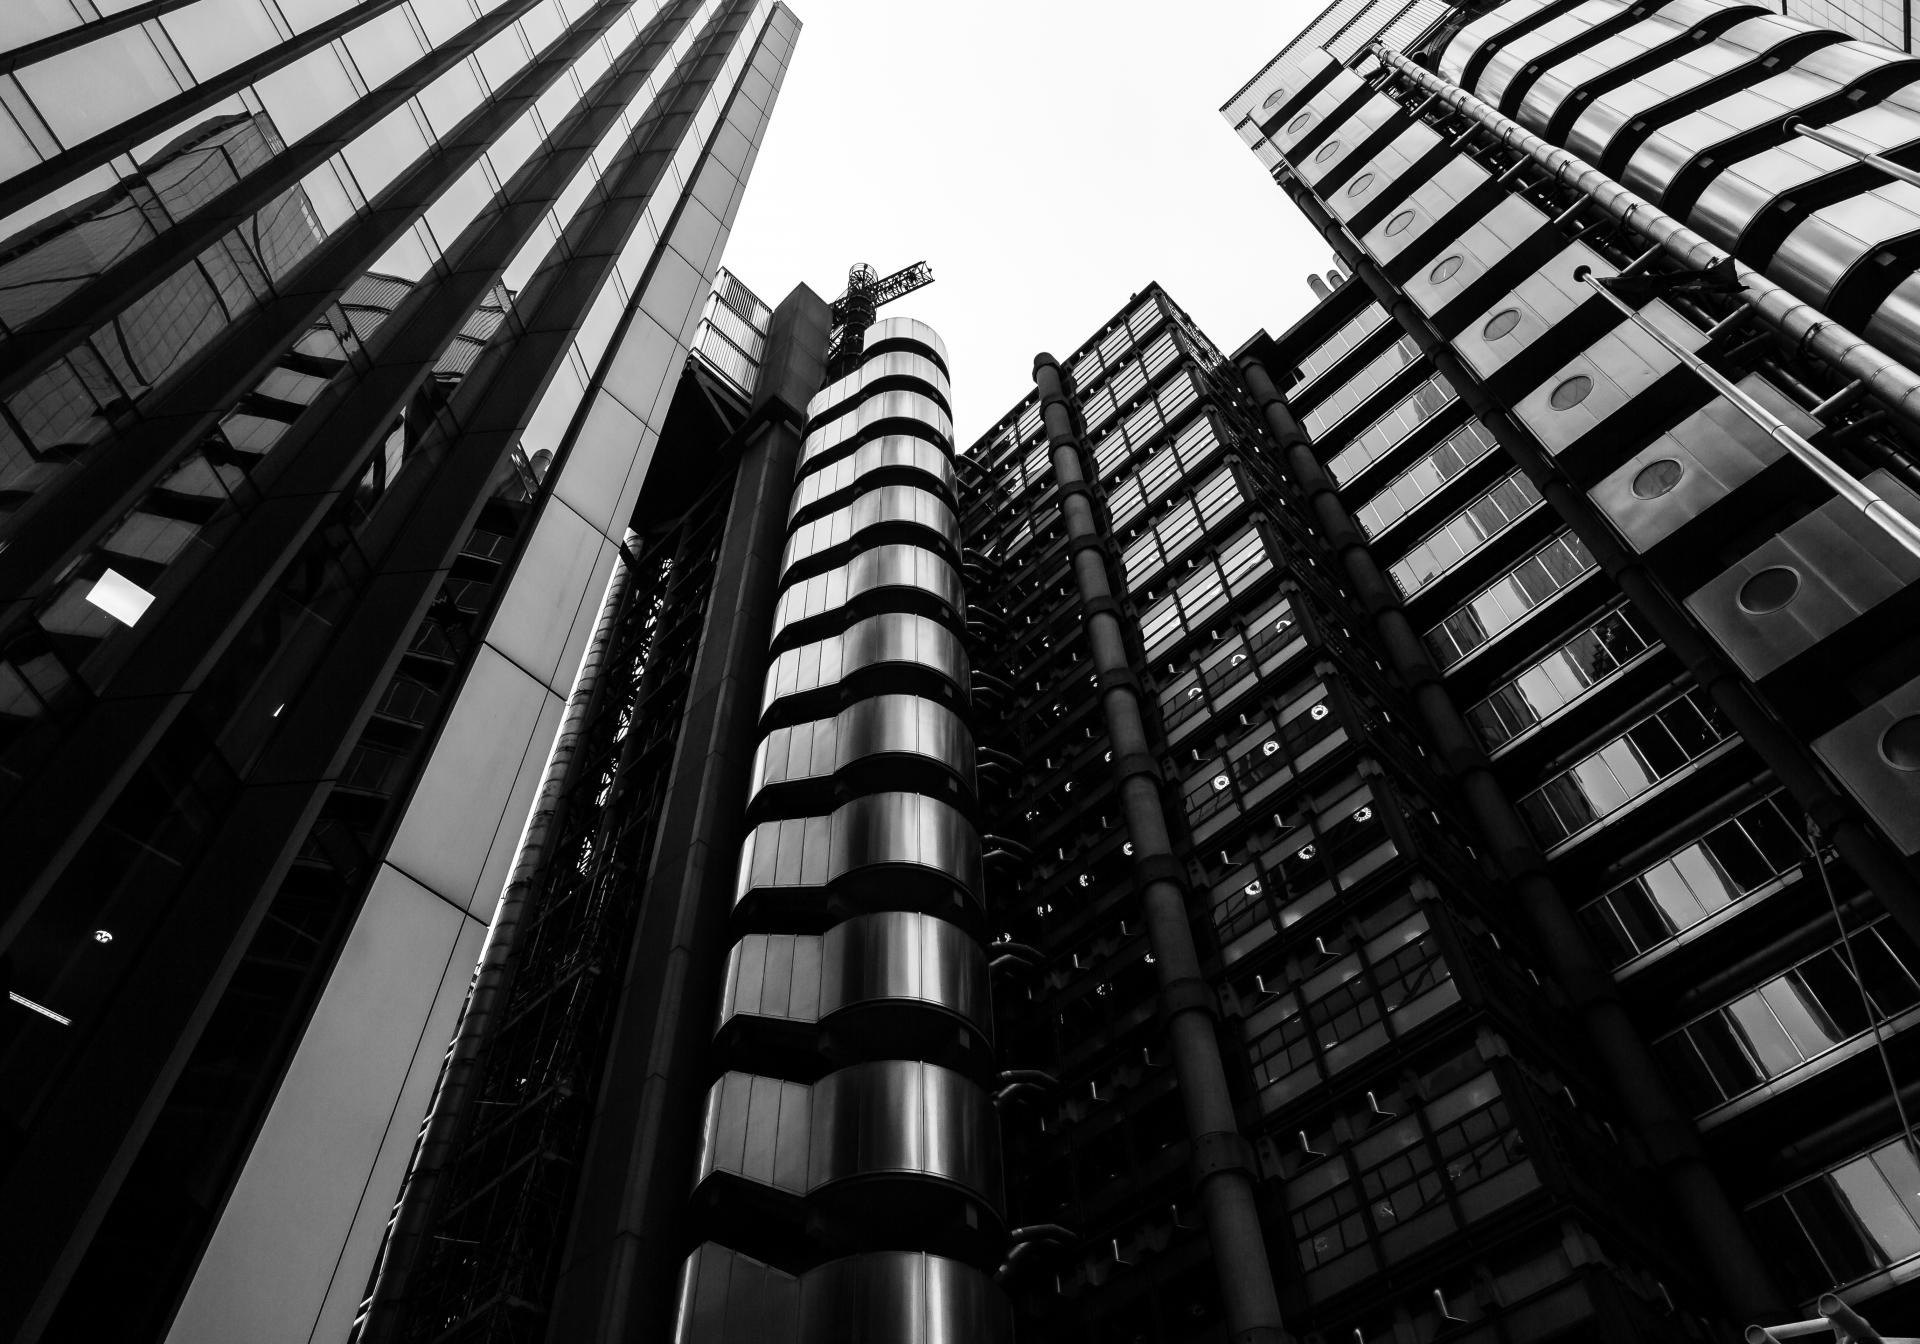 Lloyds Building looking upwards in black and white,Liane Ryan London Interior/Architectural Photographer